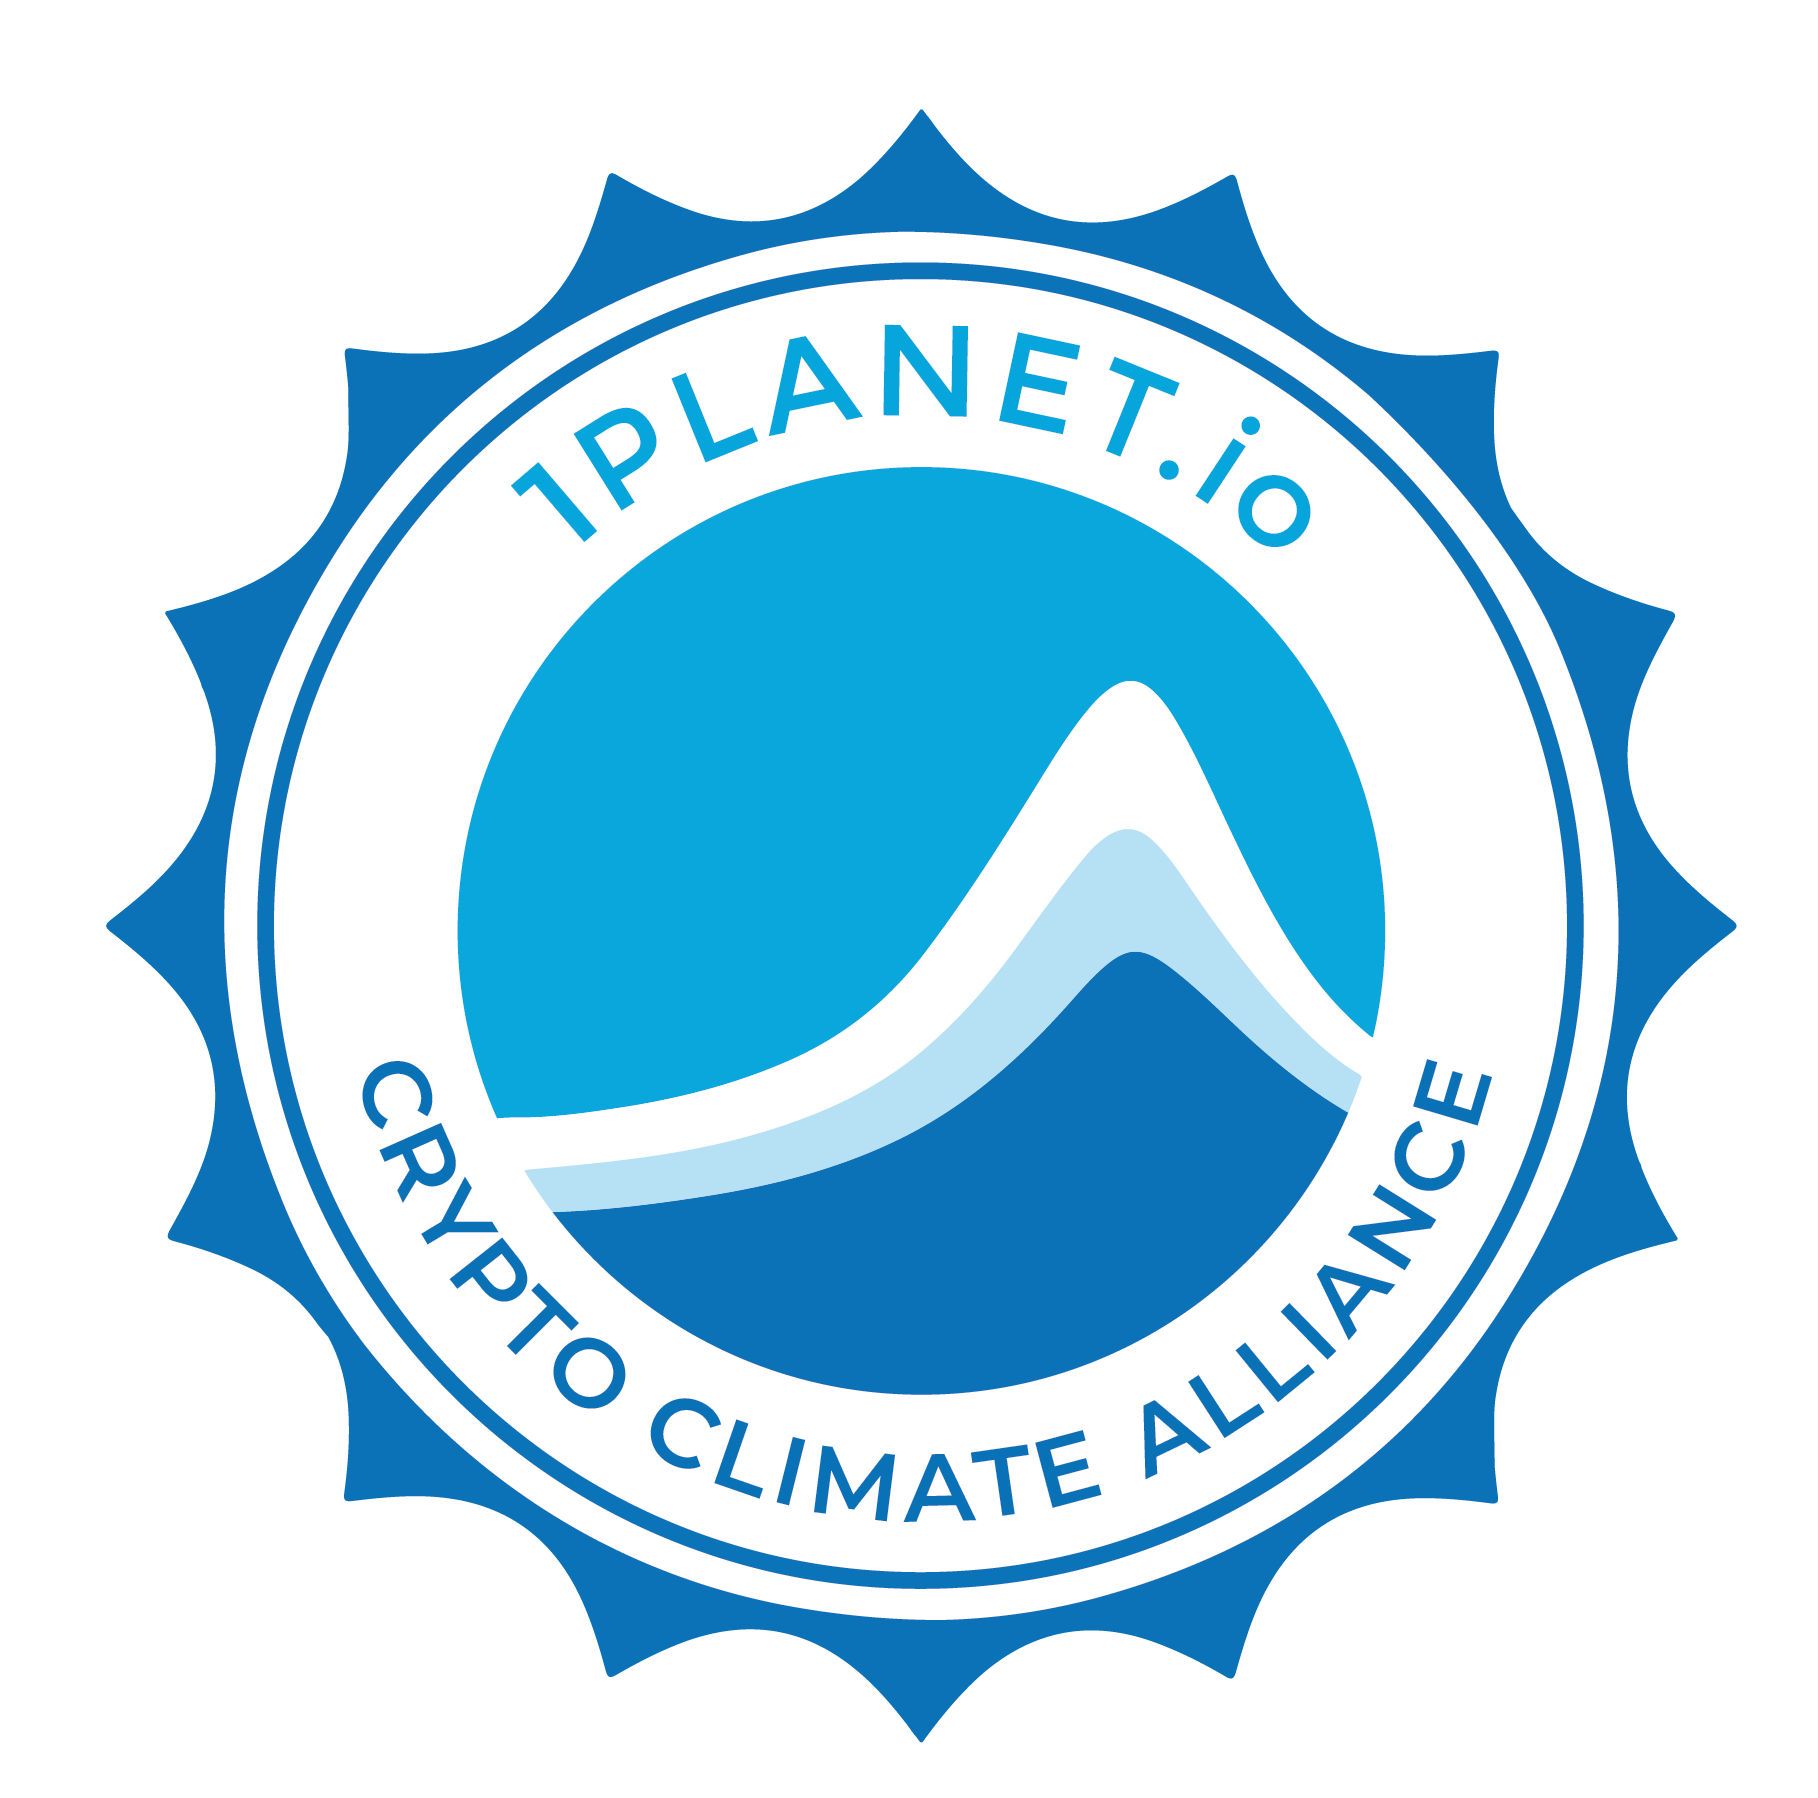 1Planet | Climate Futures | Carbon Credits | Crypto Token | Reduce Carbon Foot Print